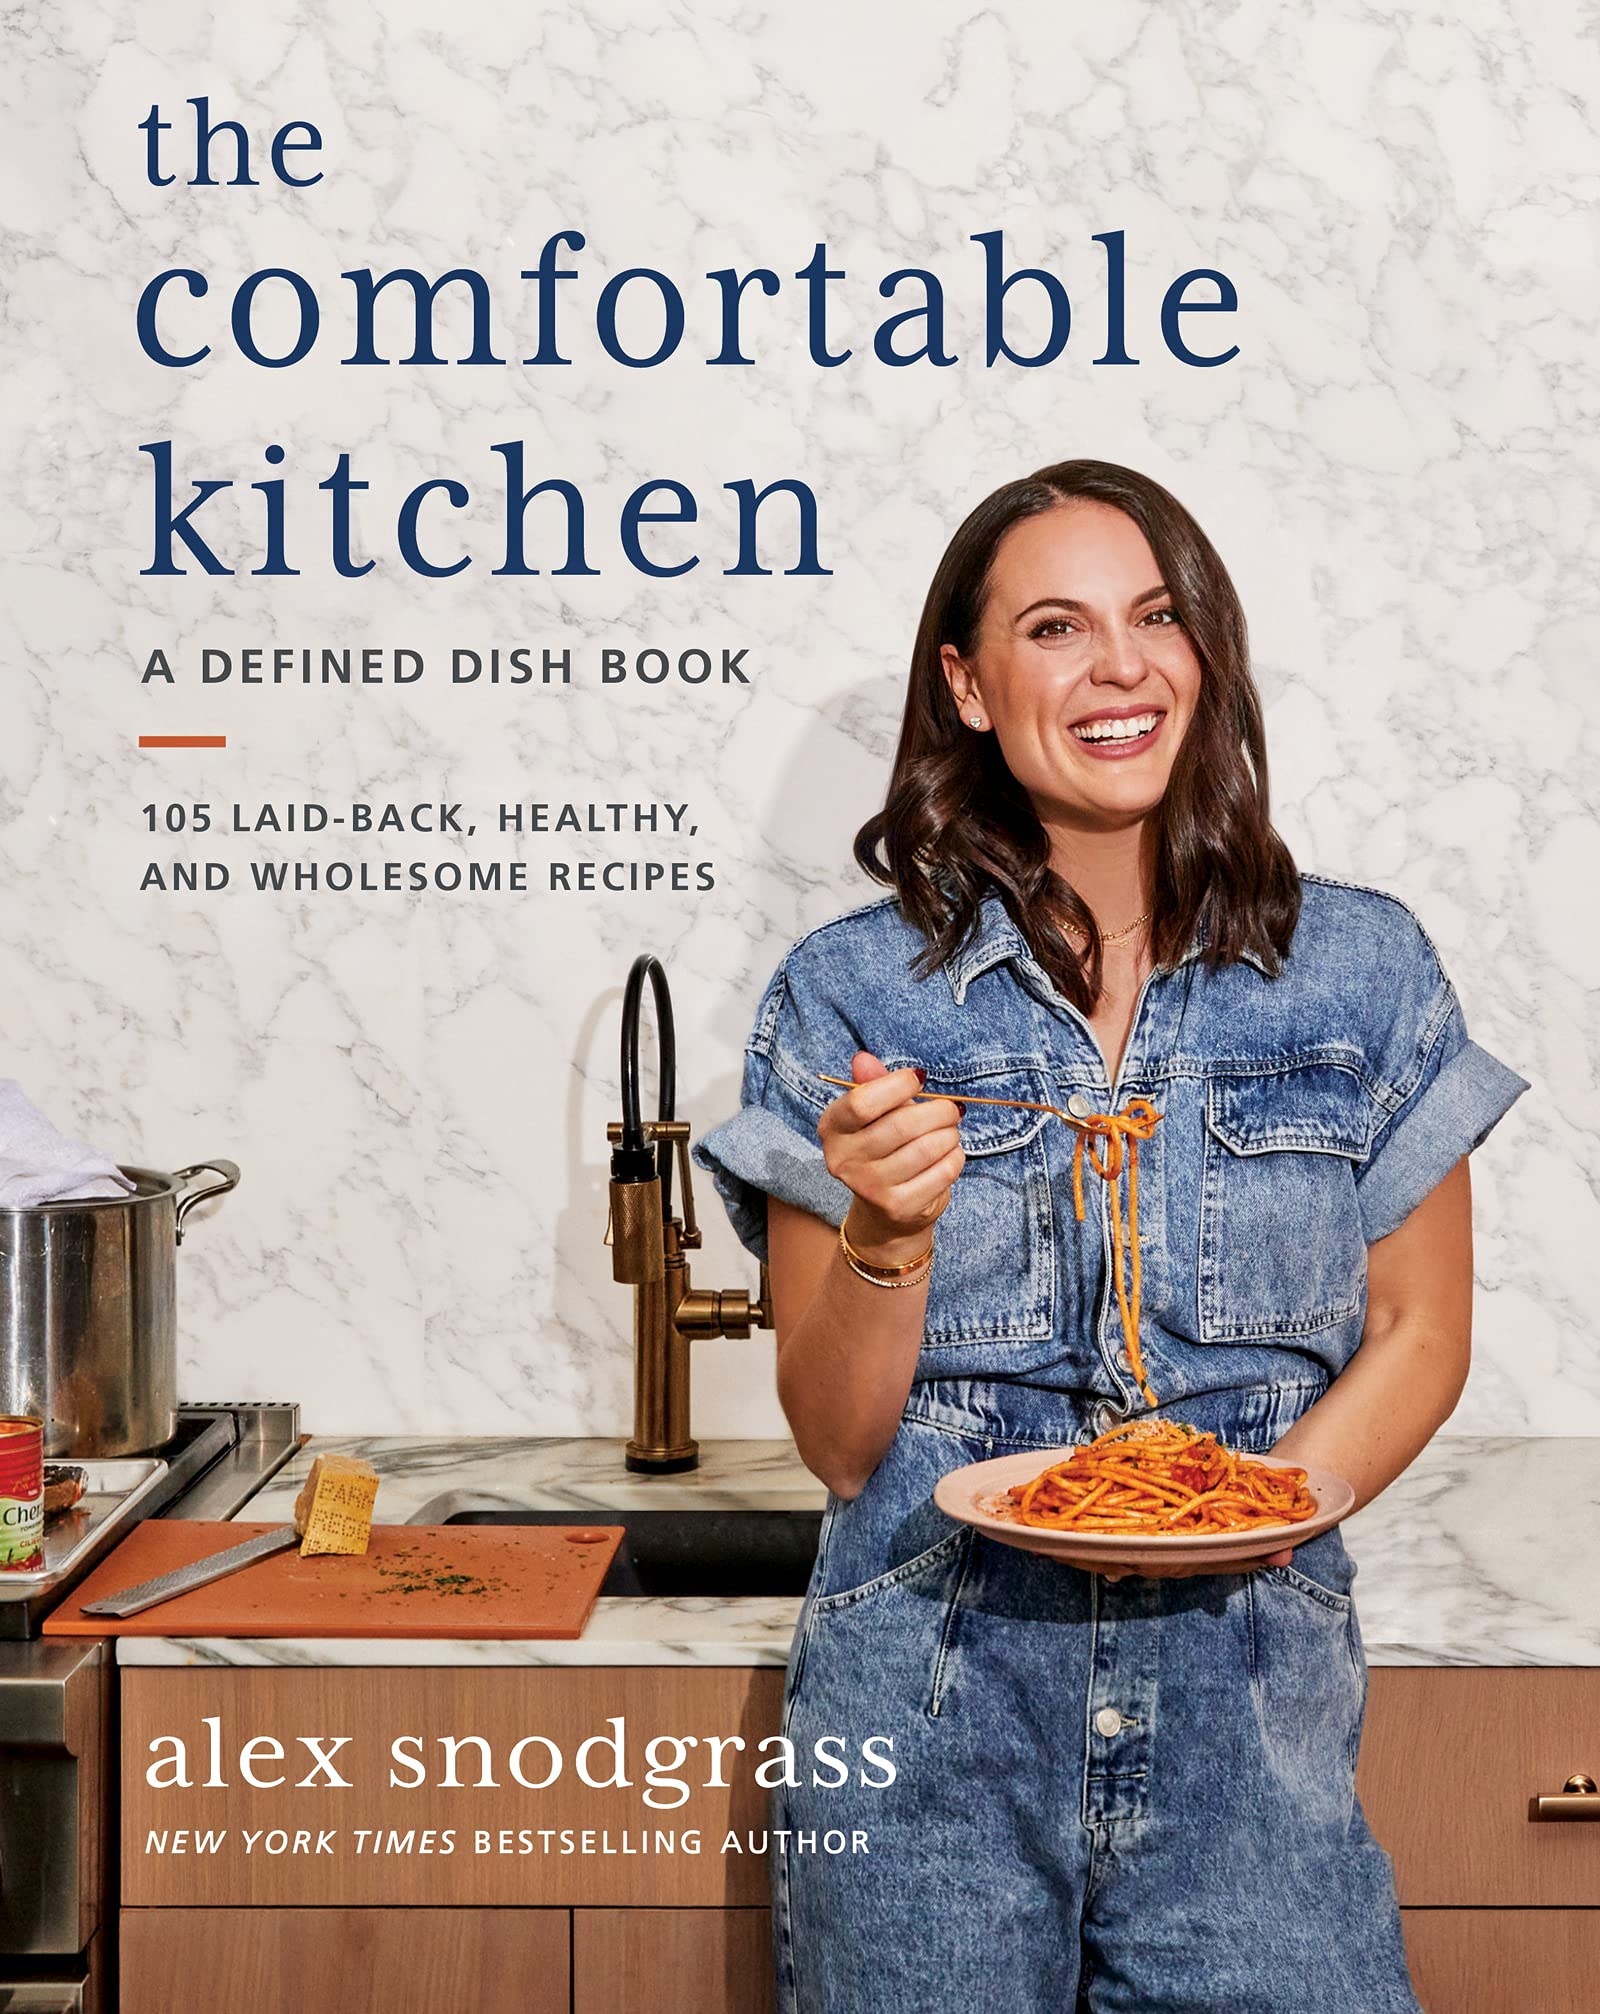 The Comfortable Kitchen: 105 Laid-Back, Healthy, and Wholesome Recipes (A Defined Dish Book)